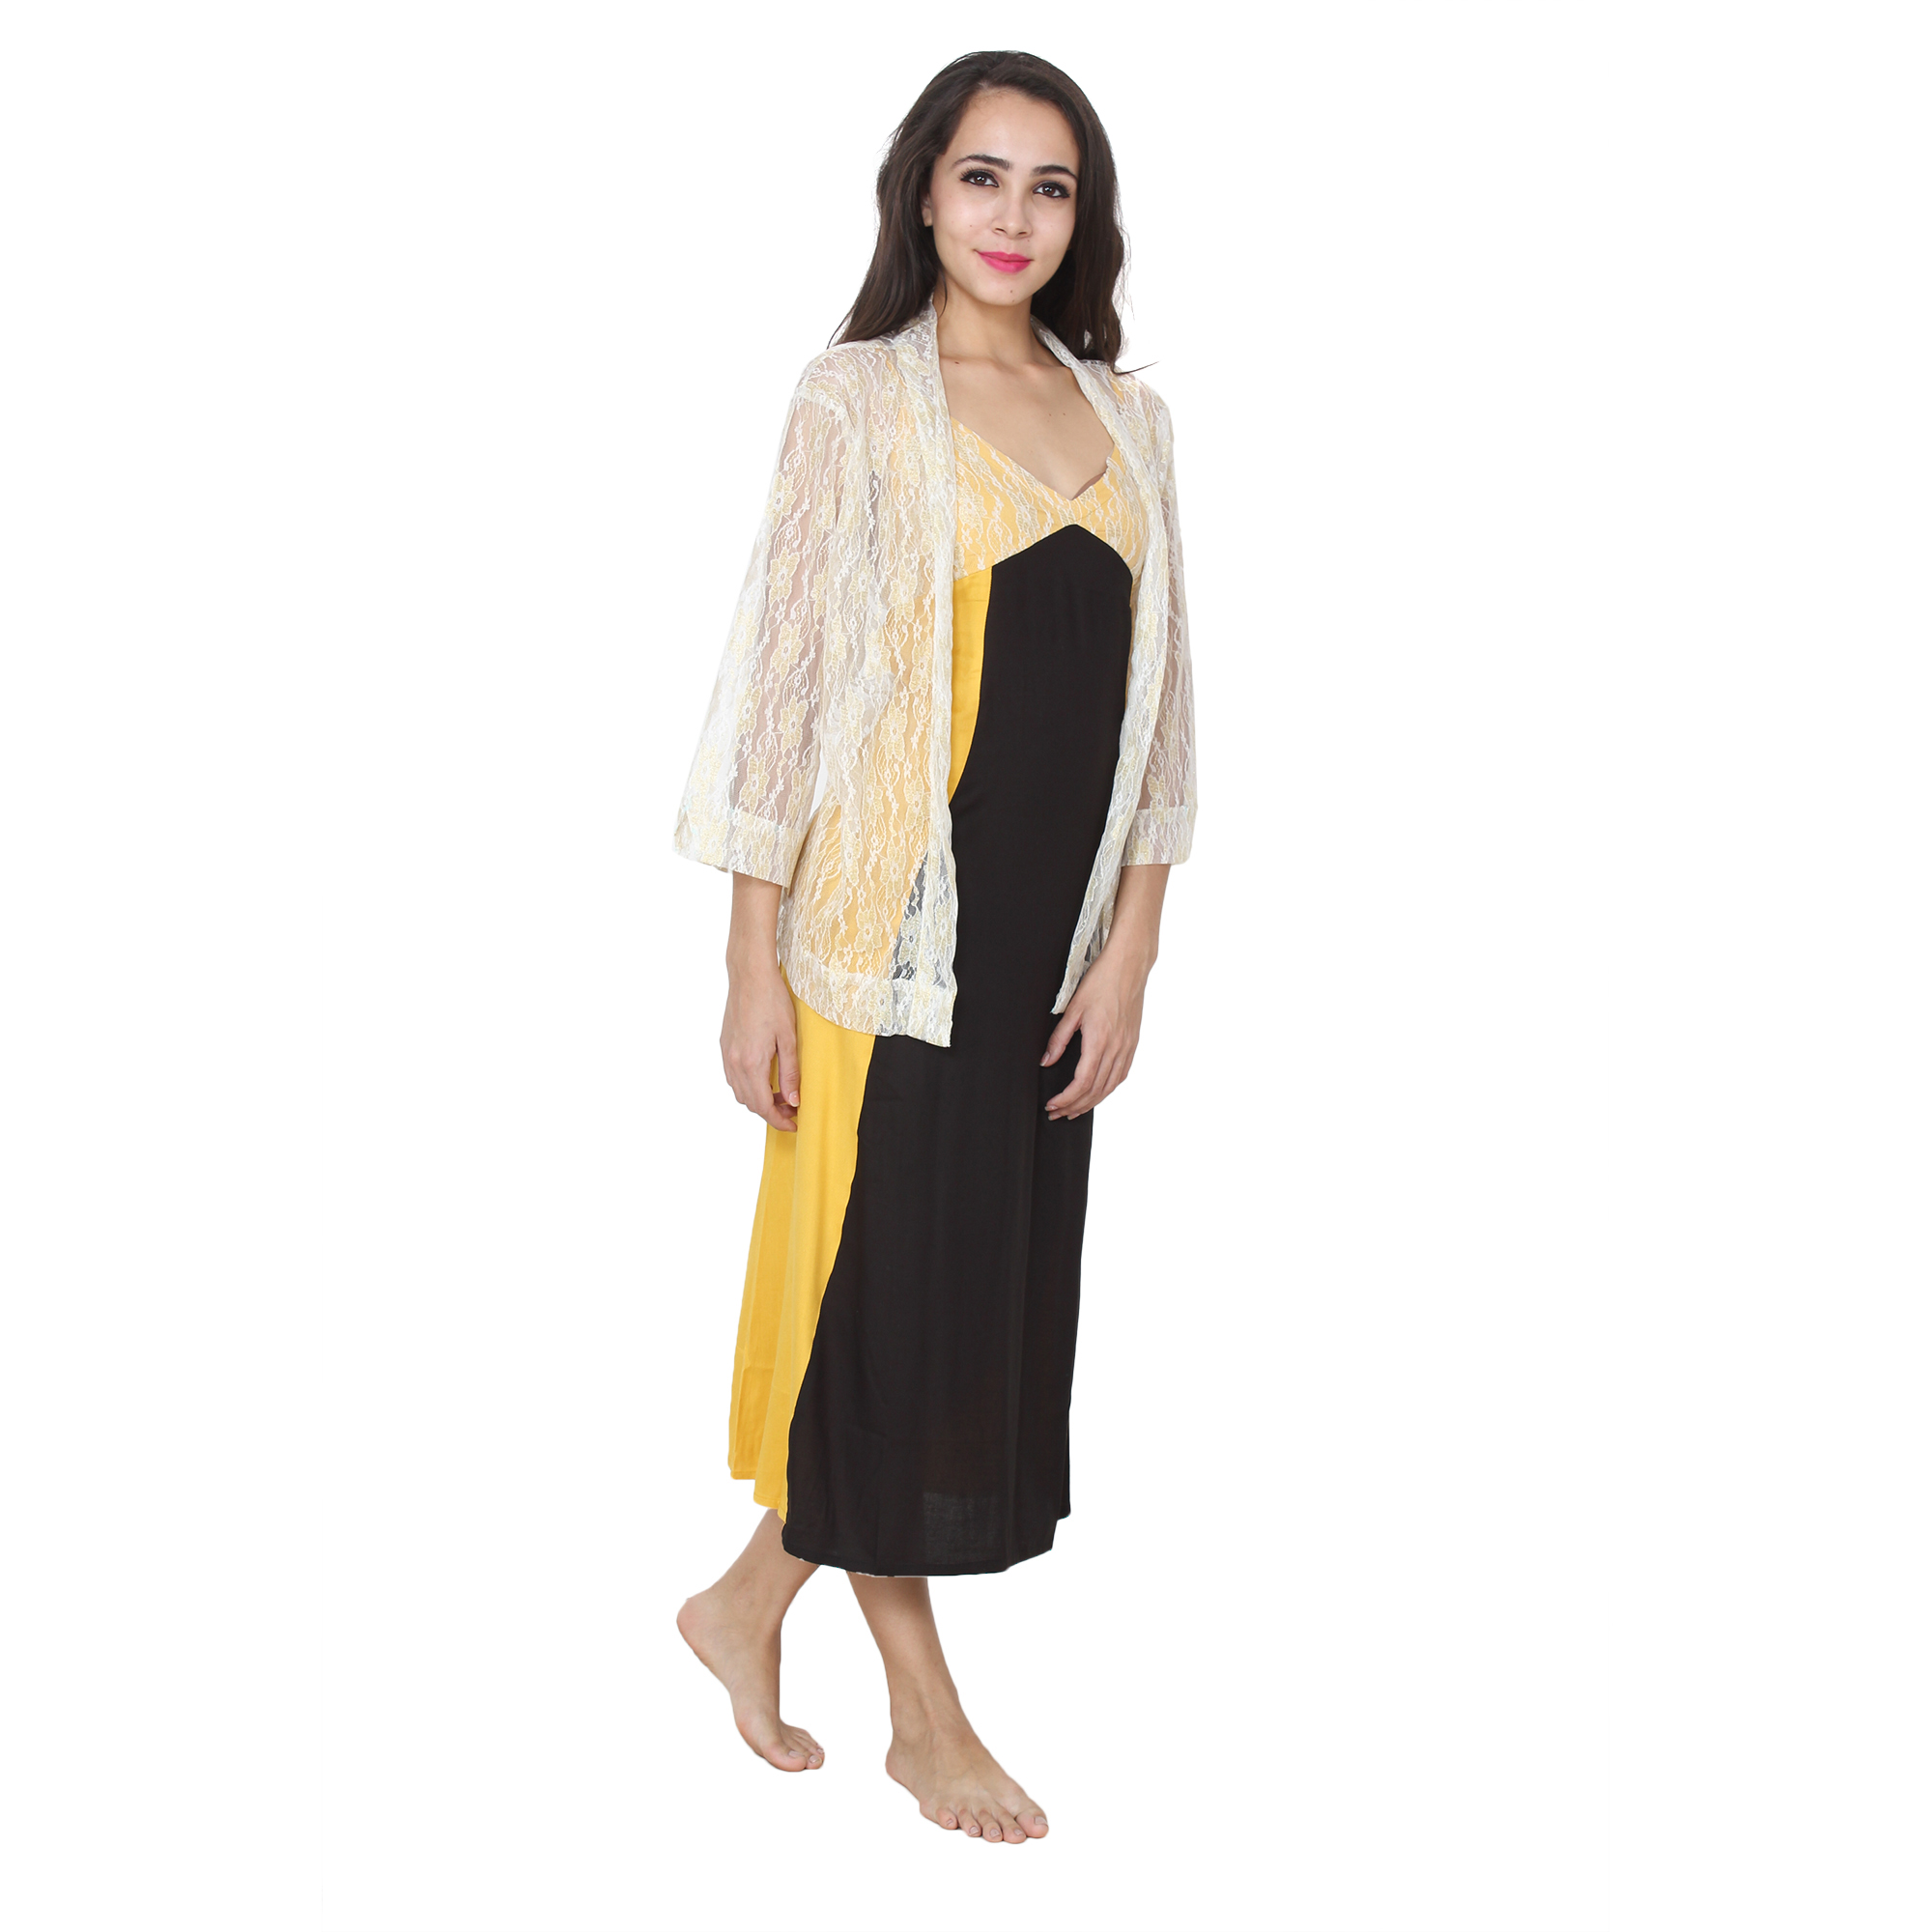 Lace Embellished Blouson Nighty with Shrug in Mustard